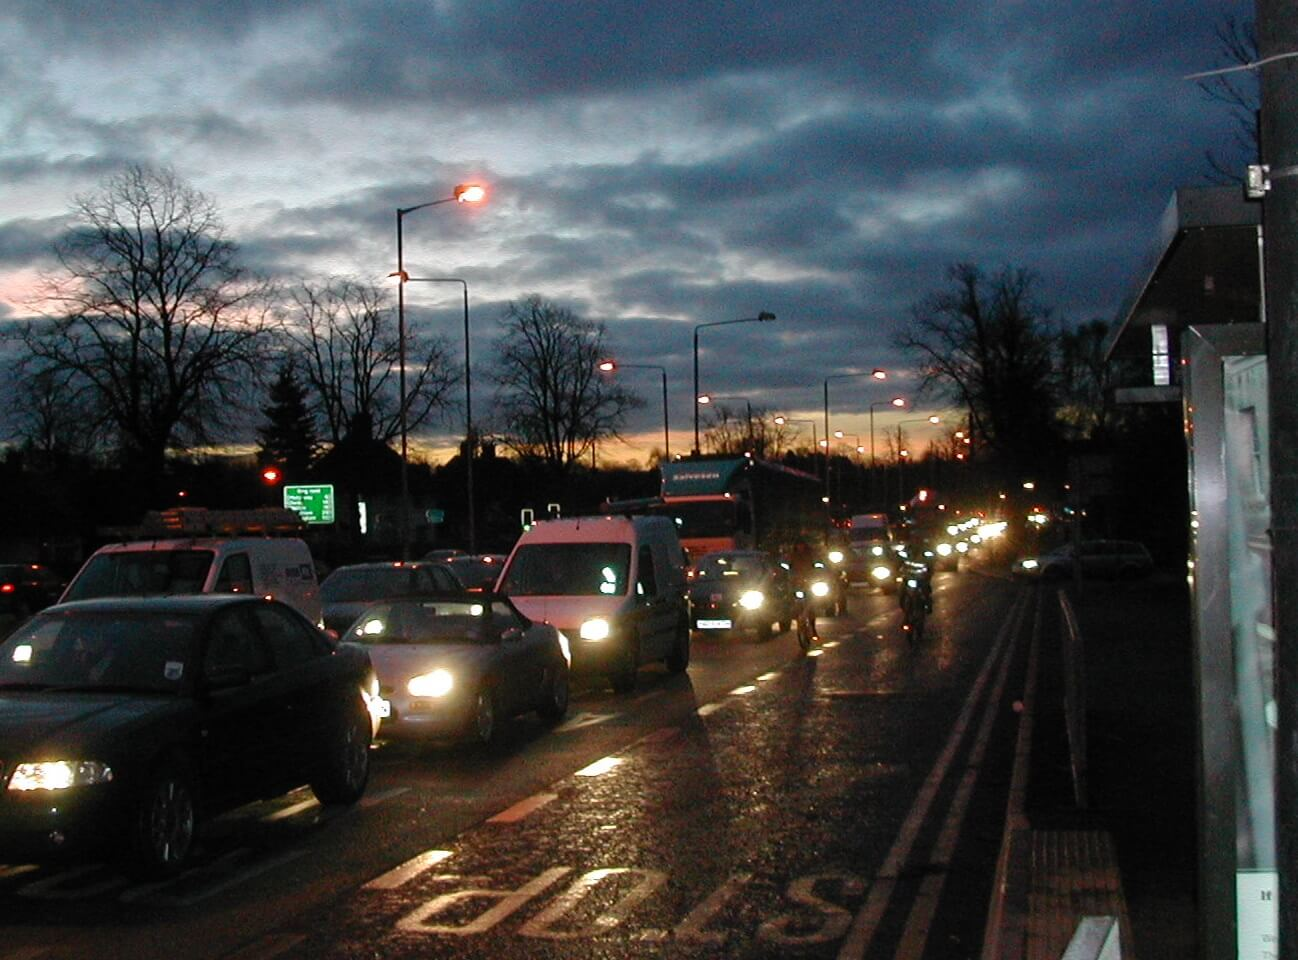 Cars stuck in traffic on a winter evening in Nottingham